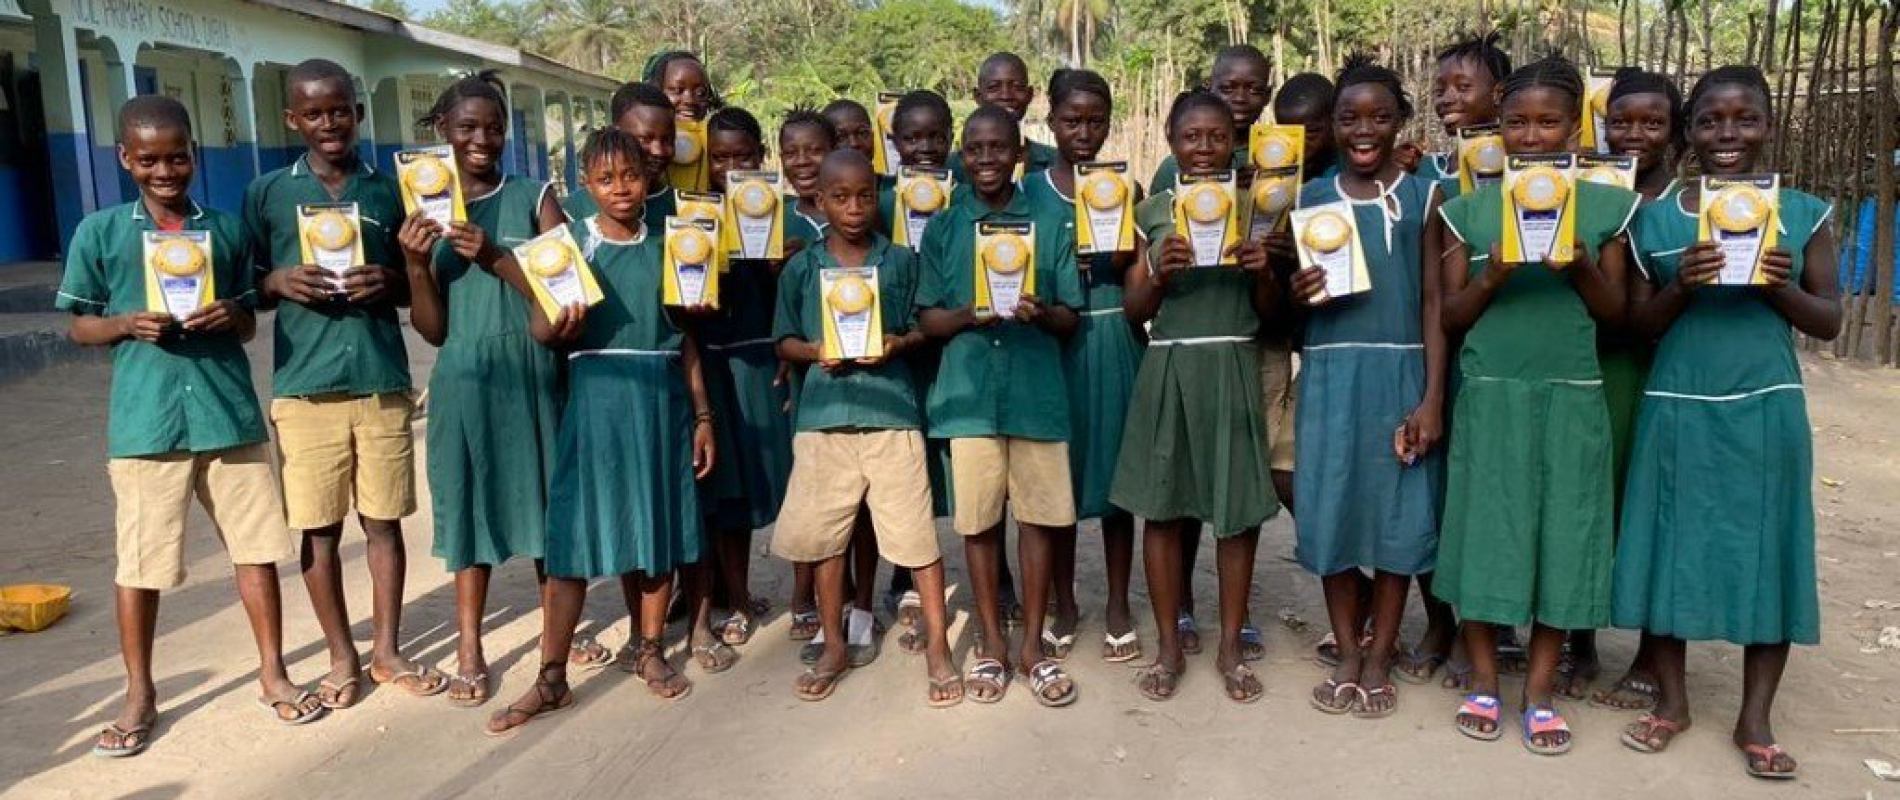 Distribution of solar lamps at kdc dibia primary school